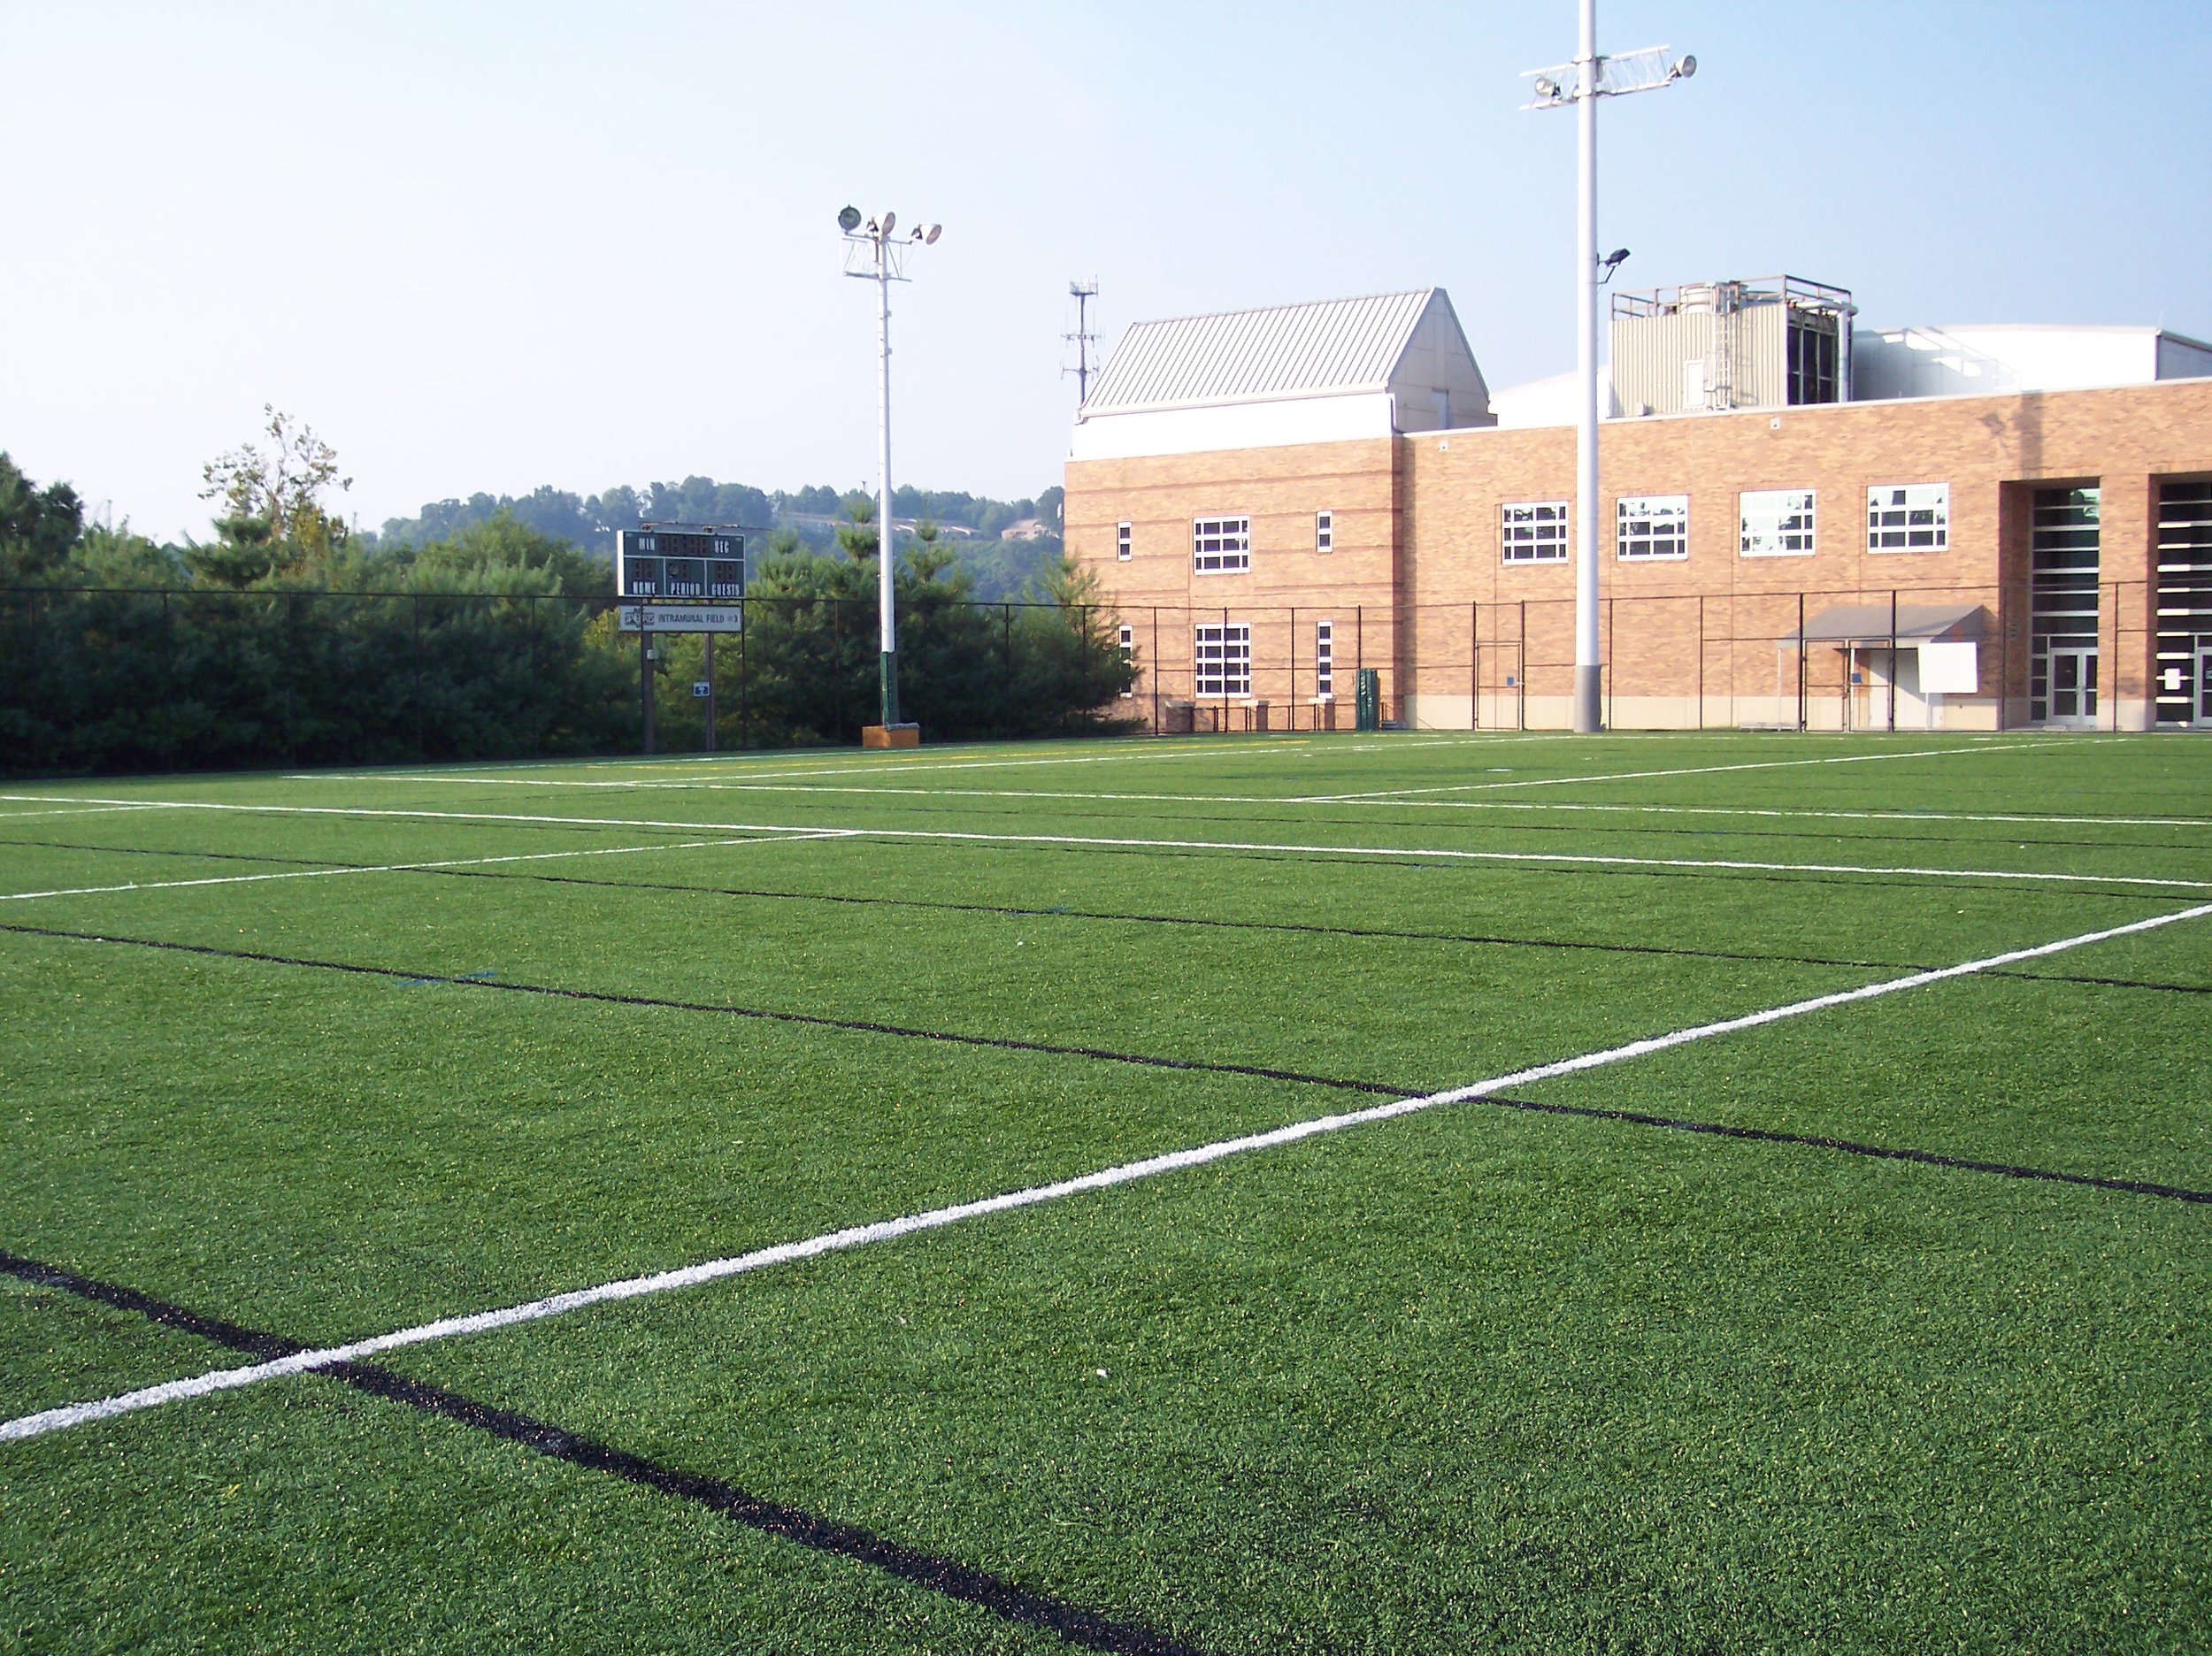 Baseline Sports Construction received an Outstanding Sports Field Award from American Sports Builders Association in 2006for the renovation of the Intramural Sports Field at the University of Tennessee in Knoxville, TN. The synthetic turf was replaced on this facility which is used for both intramural sports and marching band practice. -